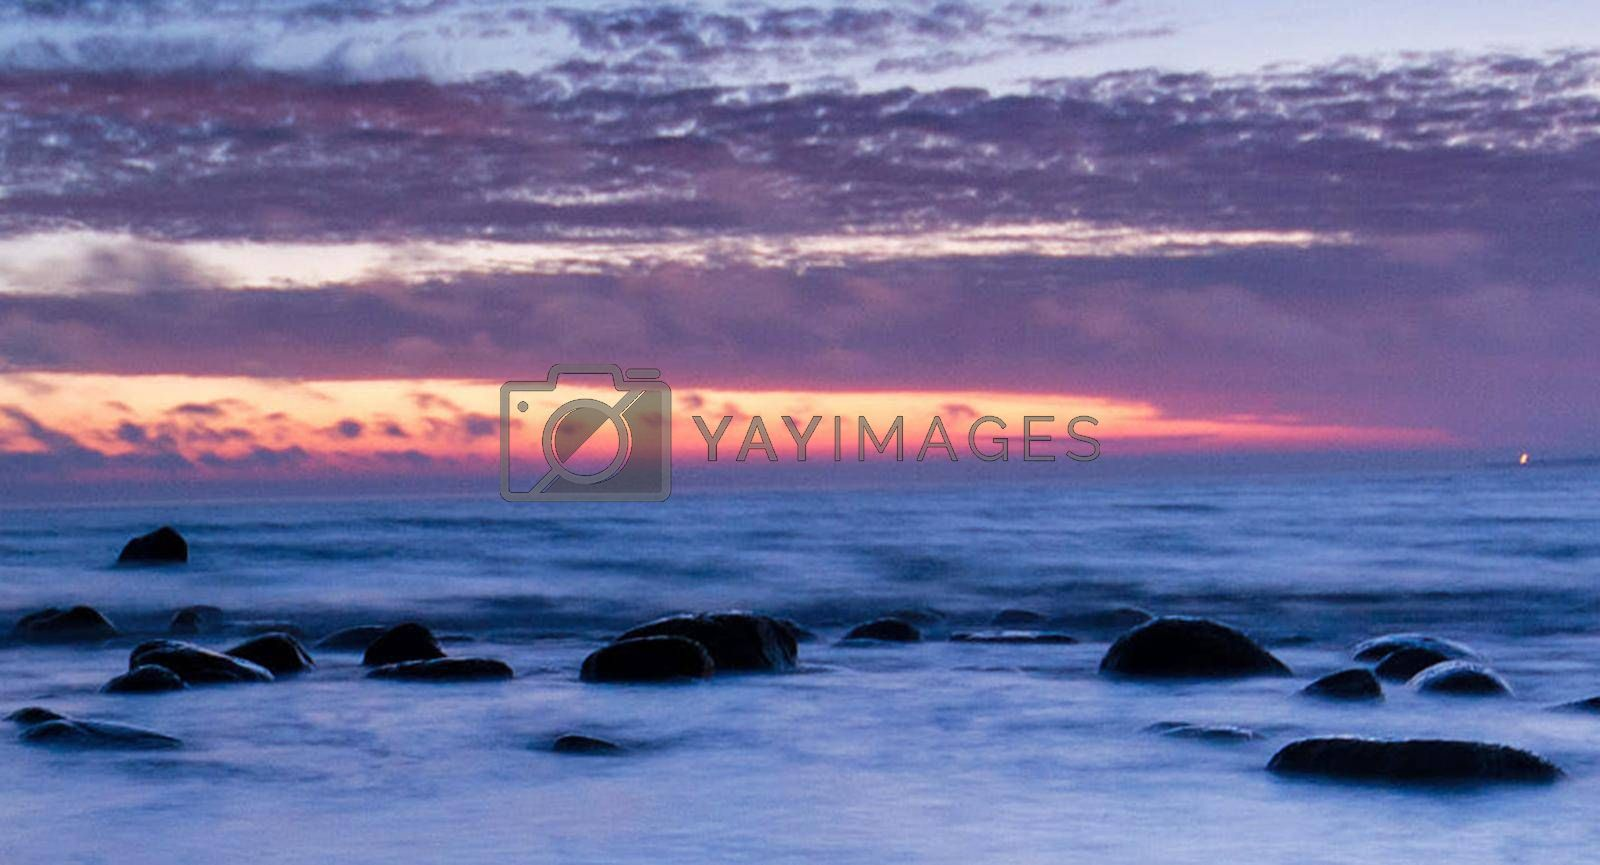 Royalty free image of Estonia pictures by TravelSync27